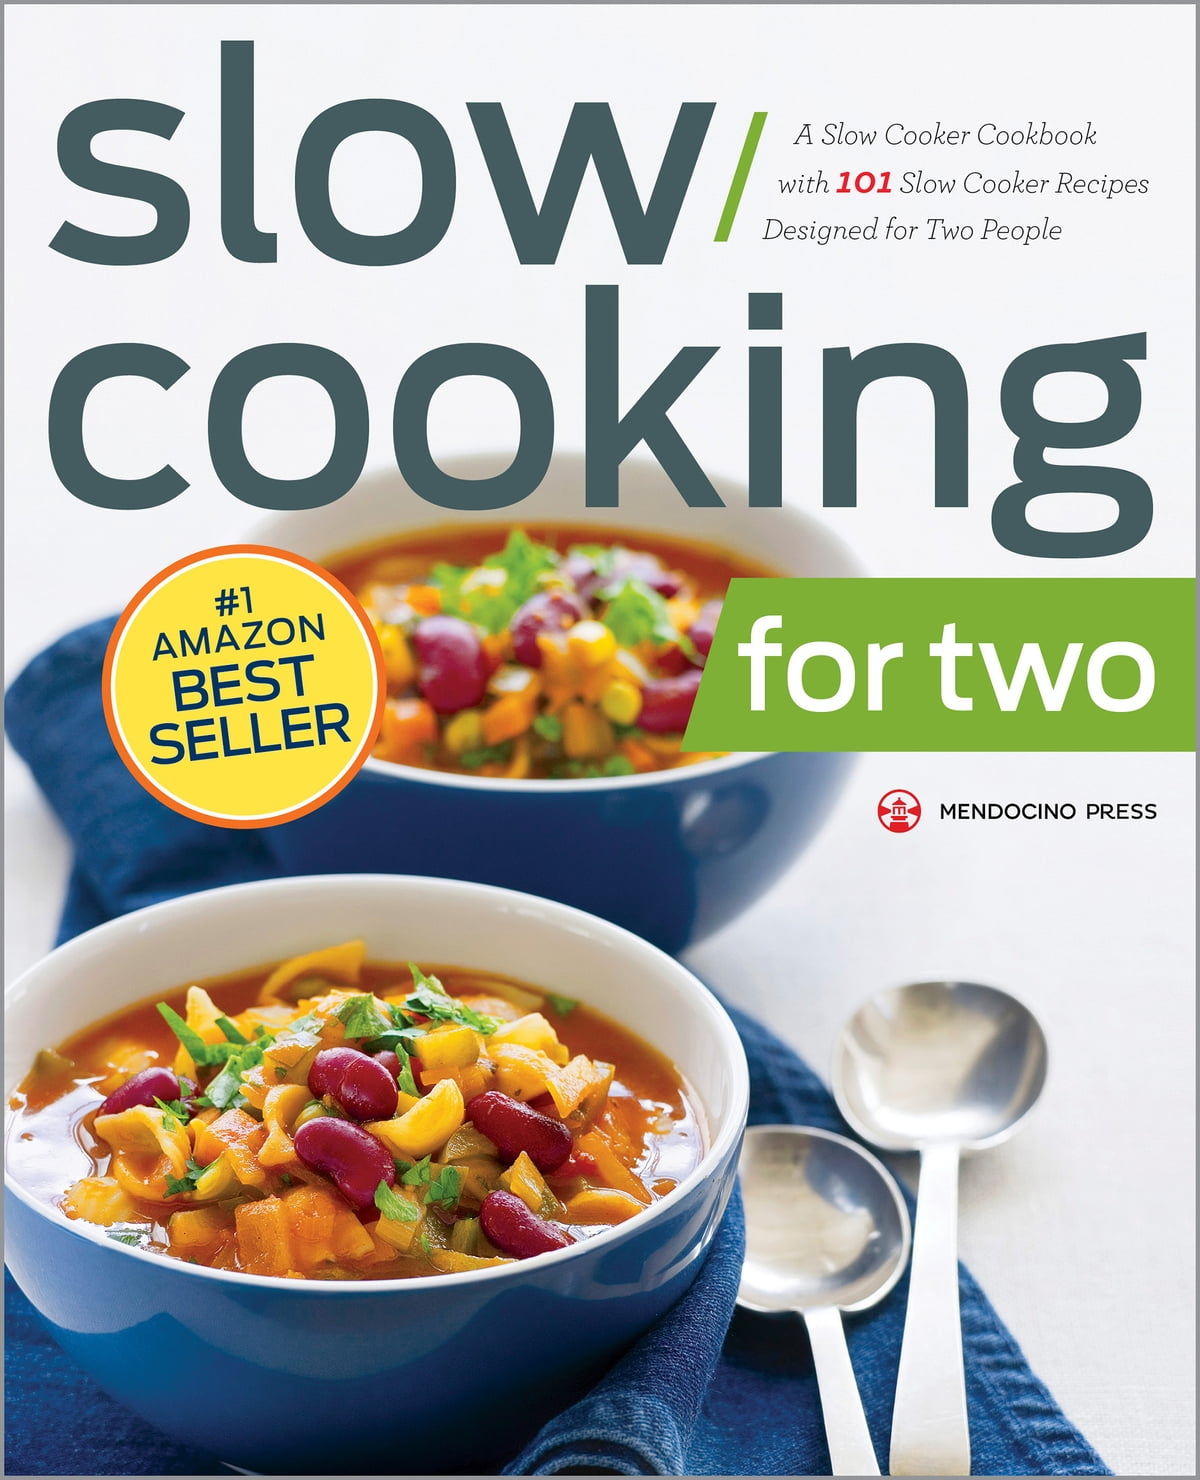 Slow Cooking for Two: A Slow Cooker Cookbook with 101 Slow Cooker Recipes  Designed for Two People eBook by Mendocino Press - 9781623153878 | Rakuten  Kobo